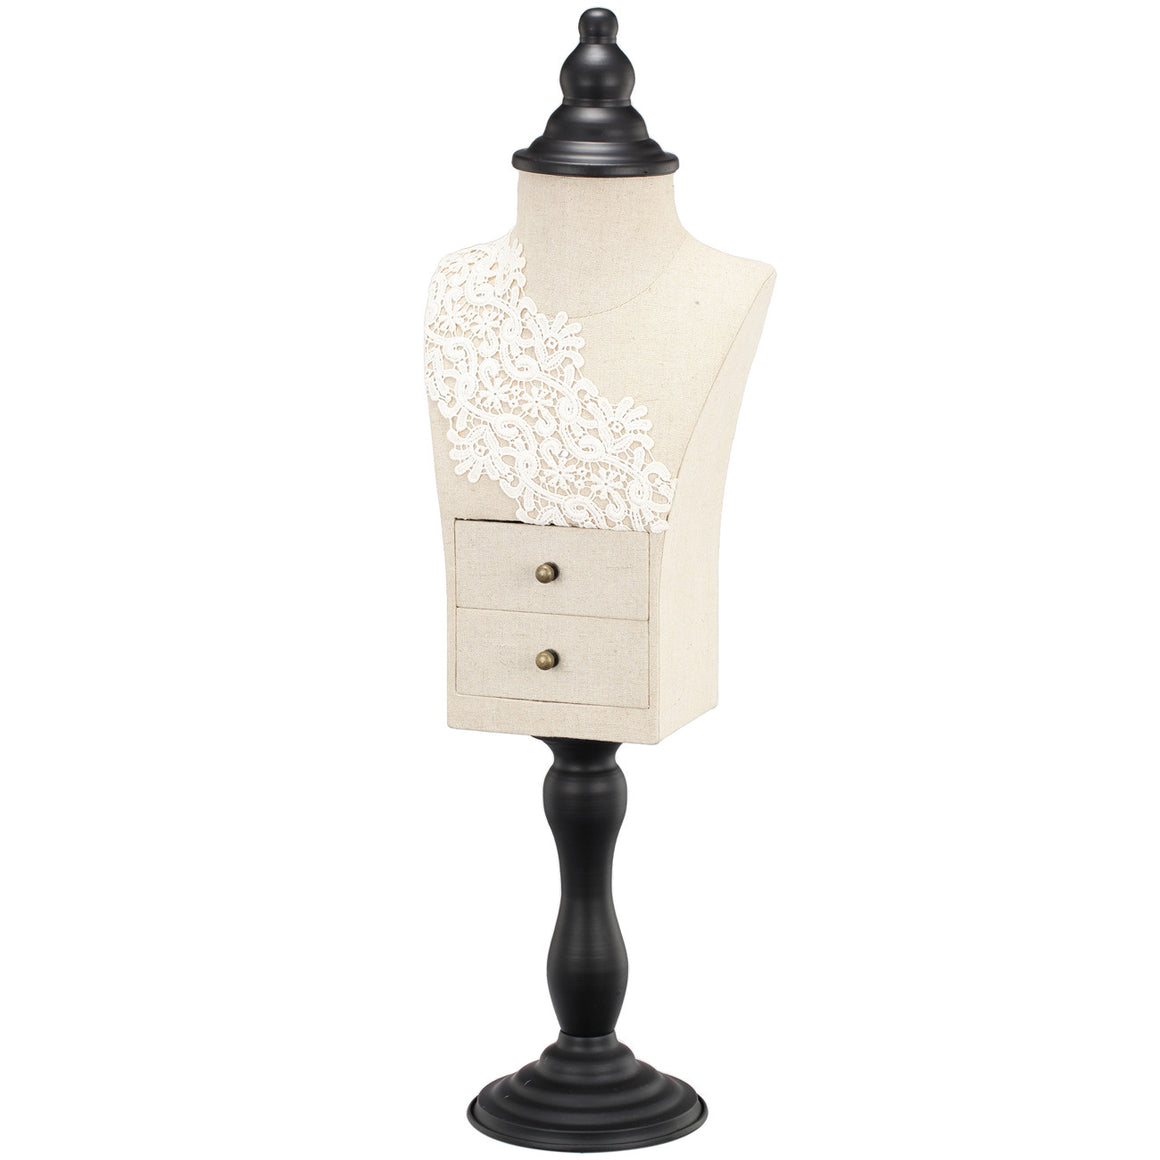 Jewelry Display Stand 40165 by A&B Home